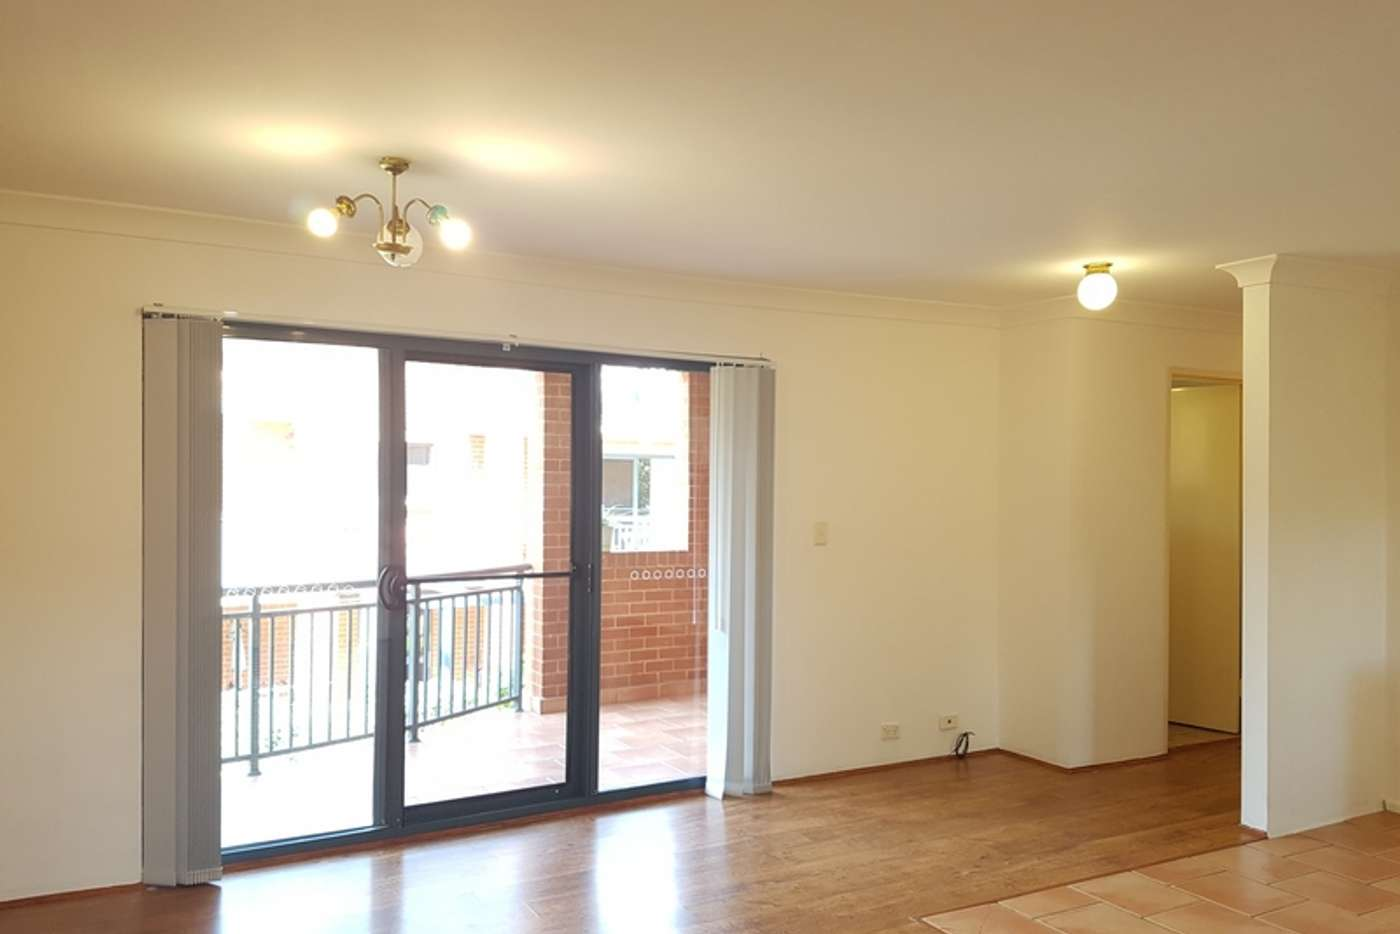 Main view of Homely apartment listing, 51/106 Elizabeth Street, Ashfield NSW 2131